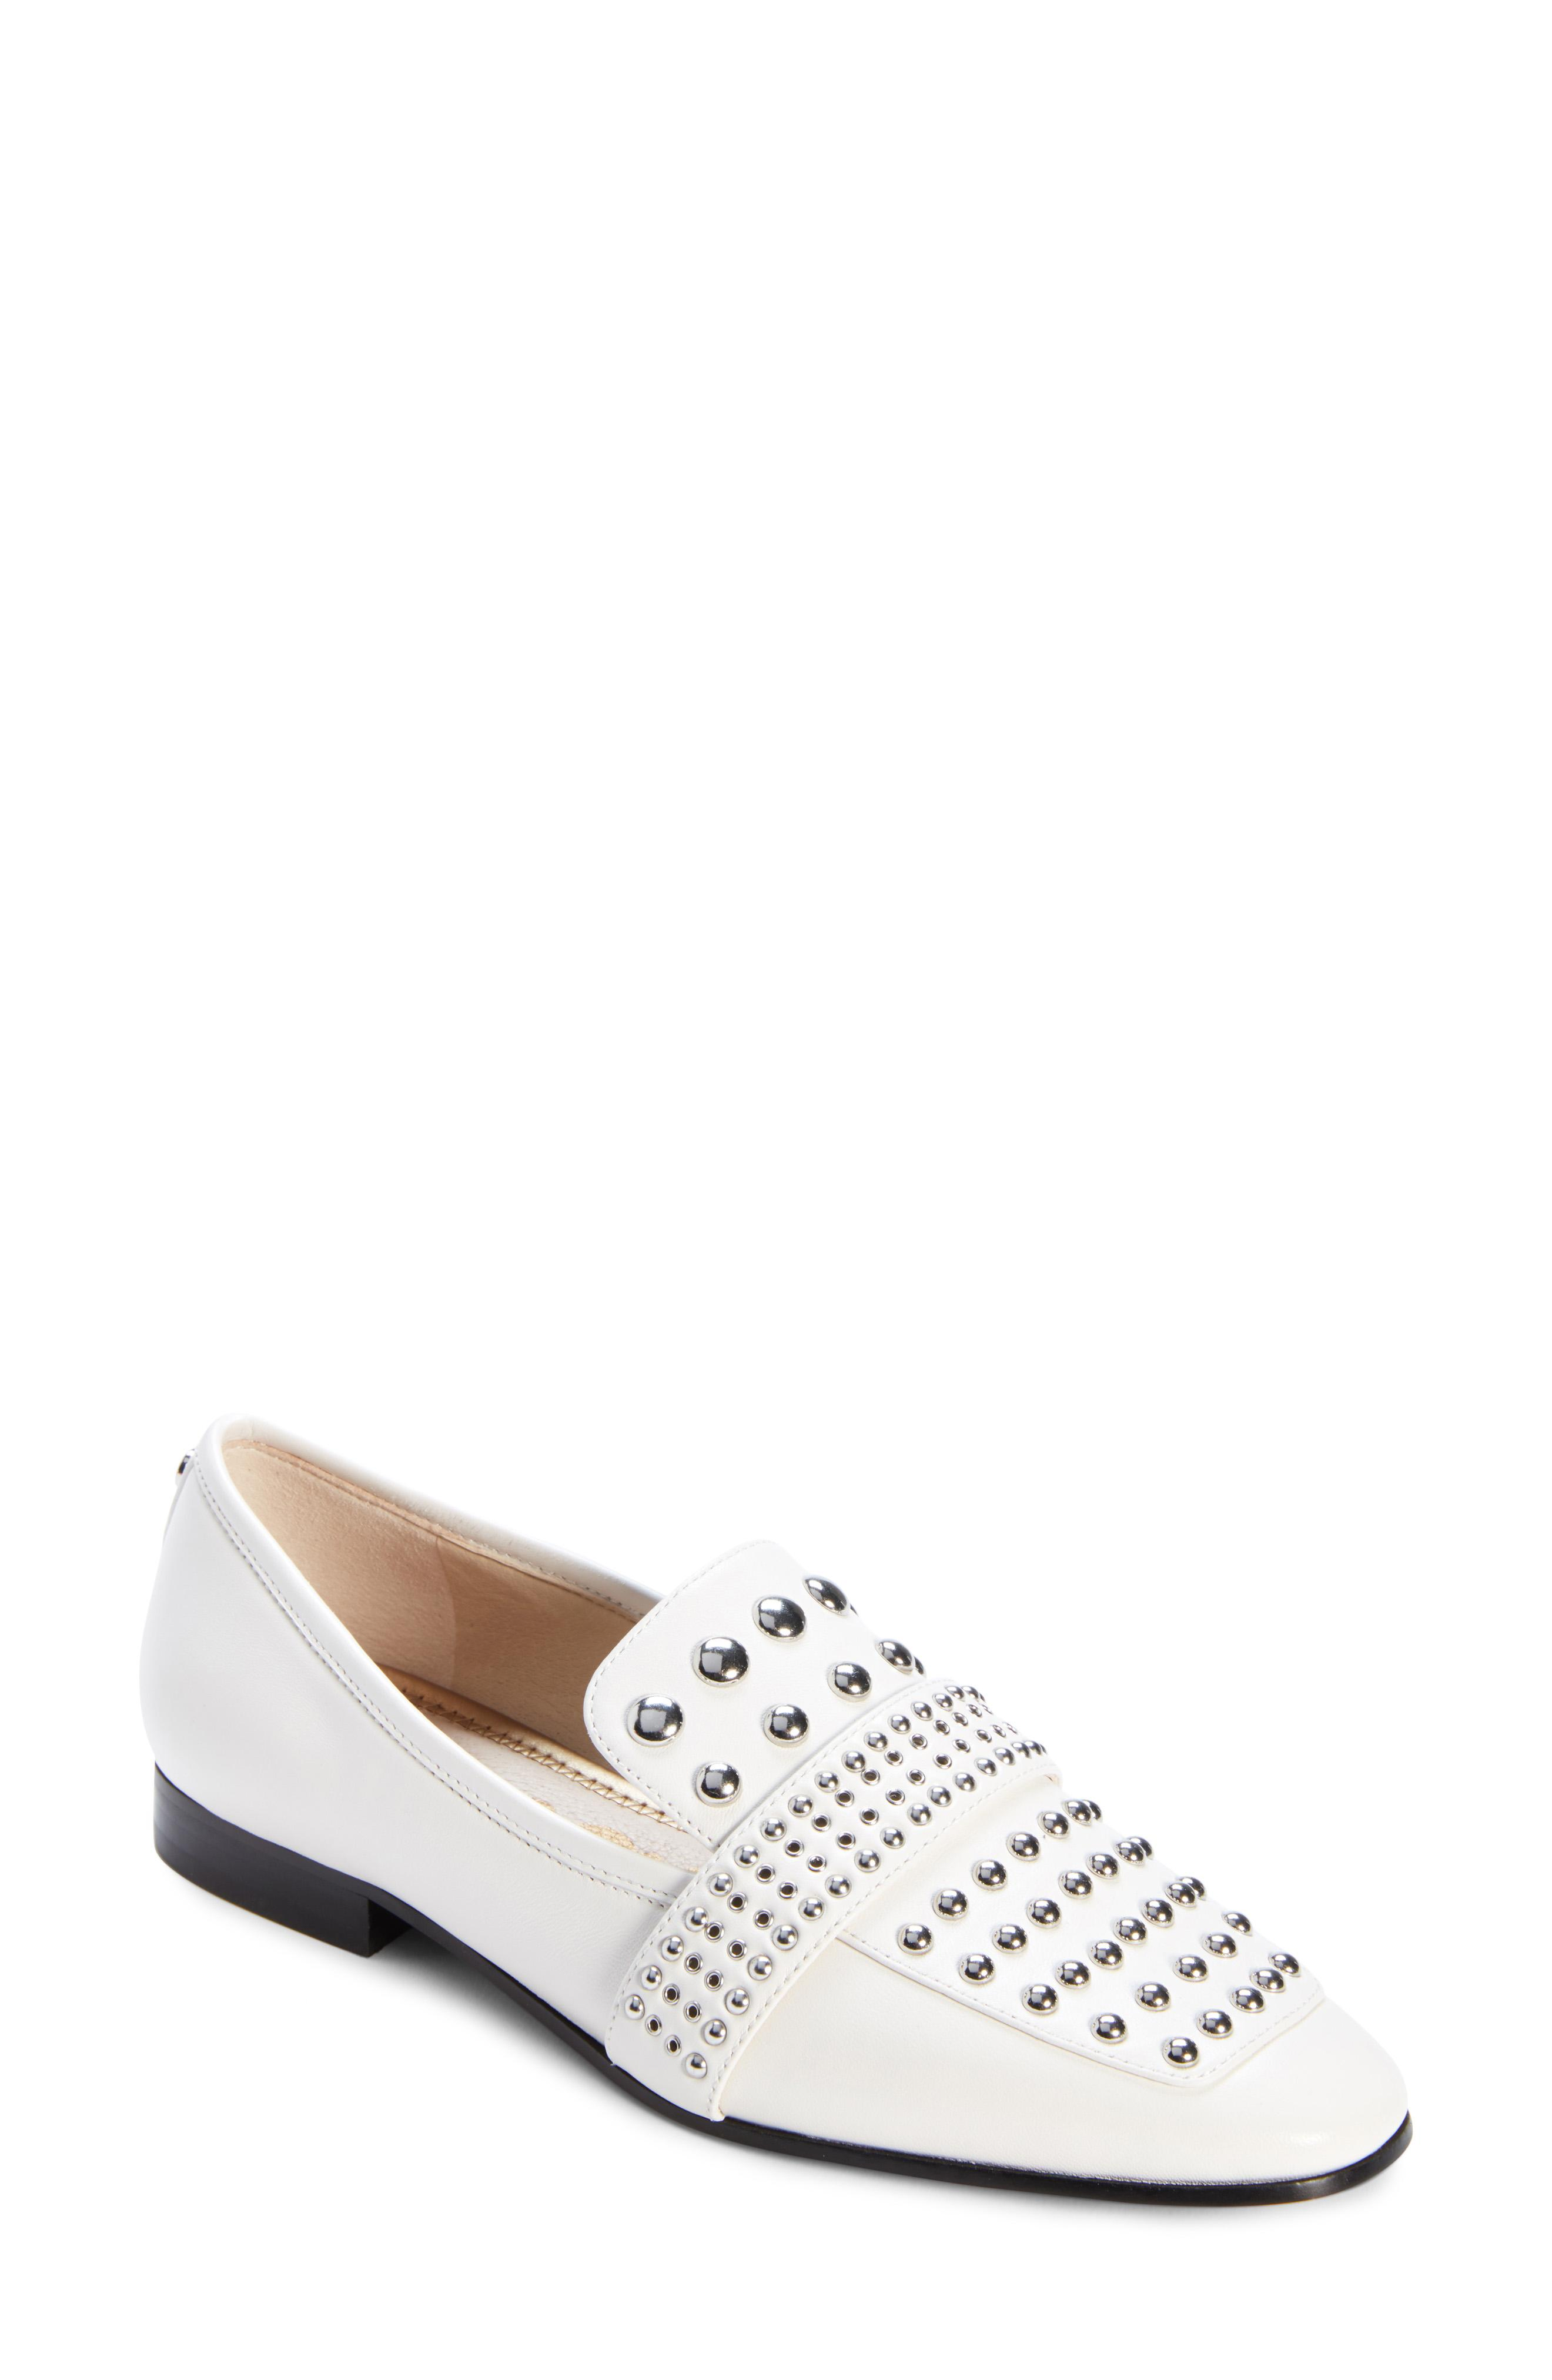 Sam Edelman Chesney Loafers -- Sale: $99.90 / After Sale: $149.95{ }(Image: Courtesy Nordstrom)